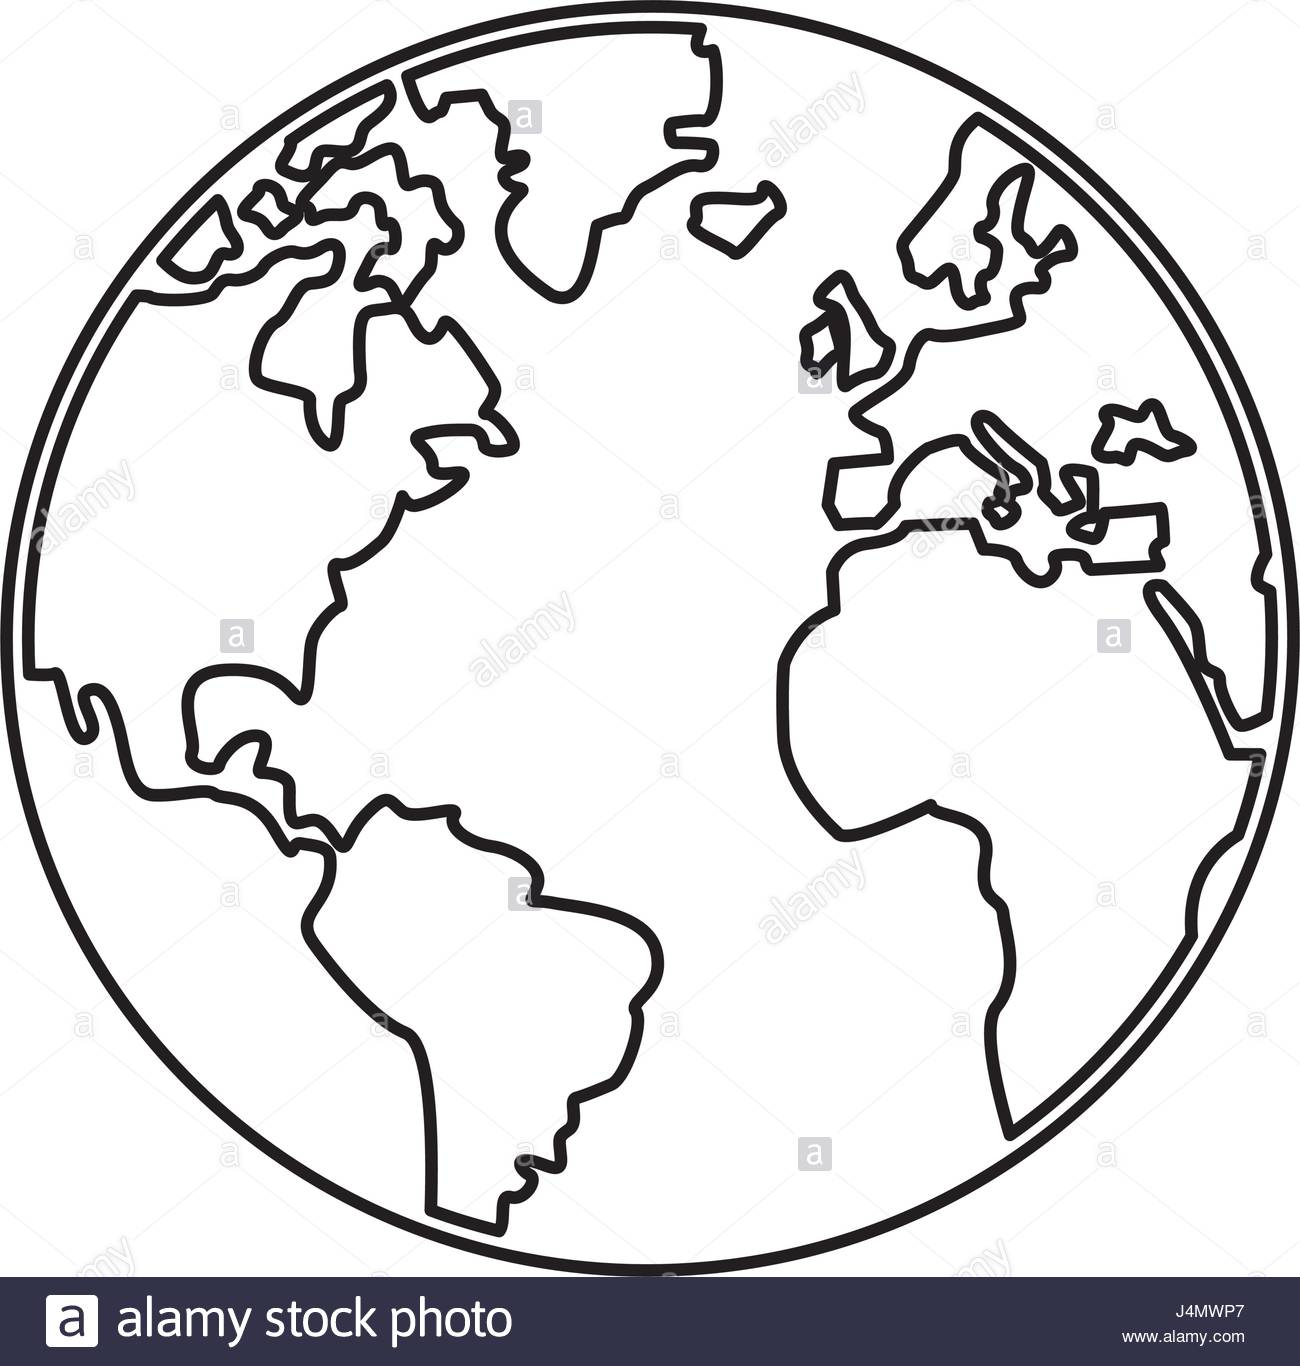 World map silhouette vector at getdrawings free for personal 1300x1366 world map earth globes cartography continents outline stock vector gumiabroncs Images